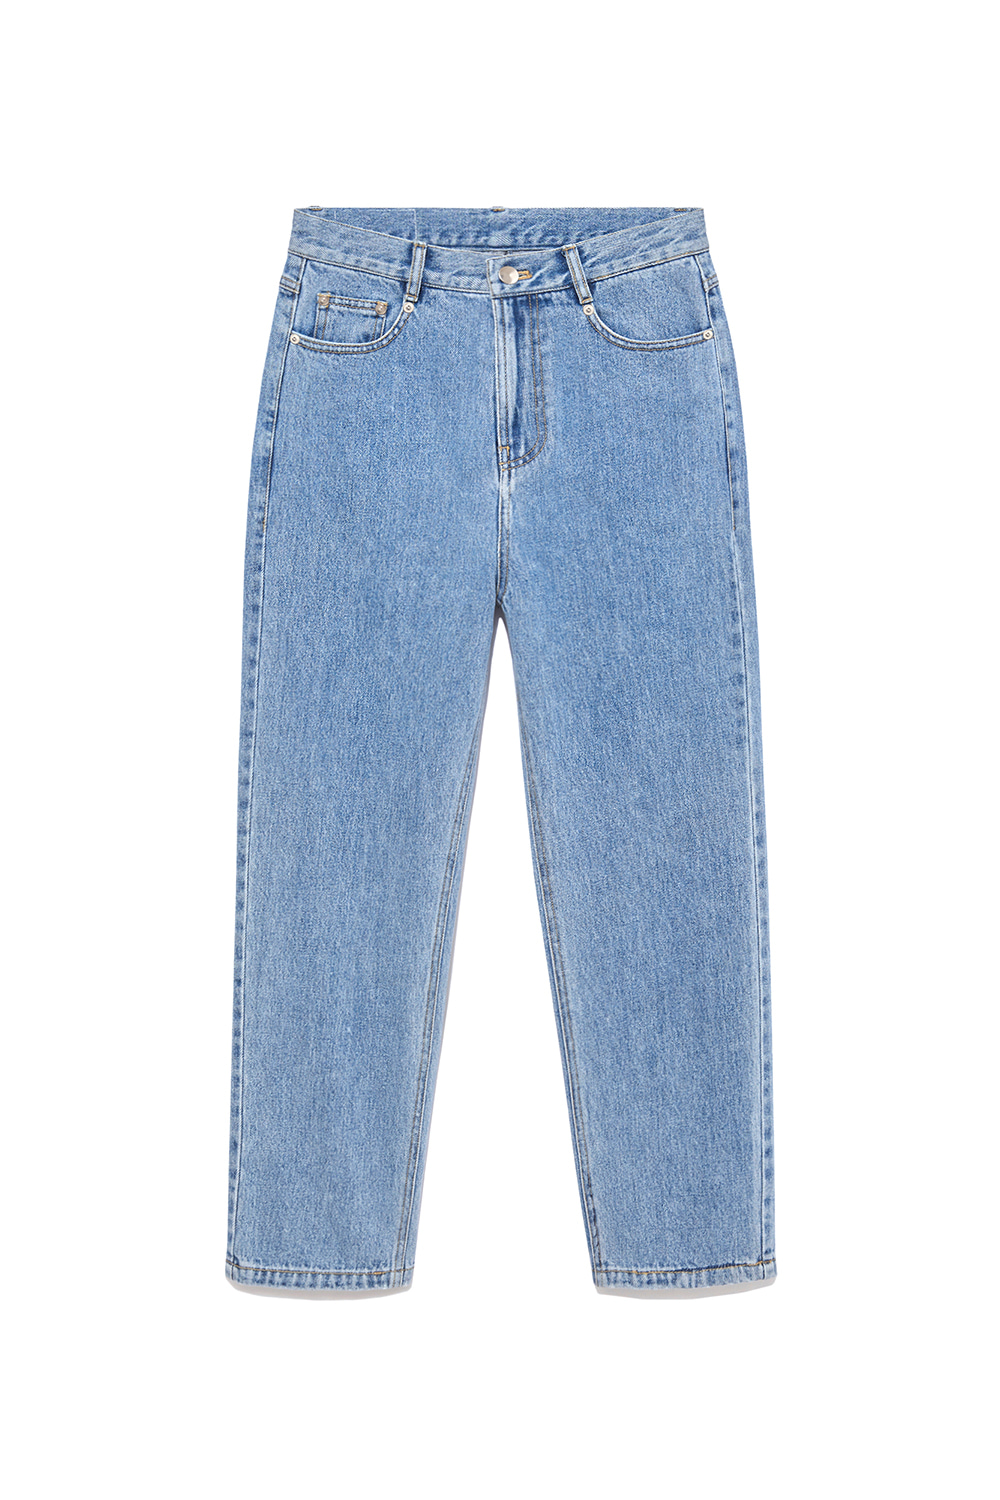 Highwaist Denim Pants Women [Blue]